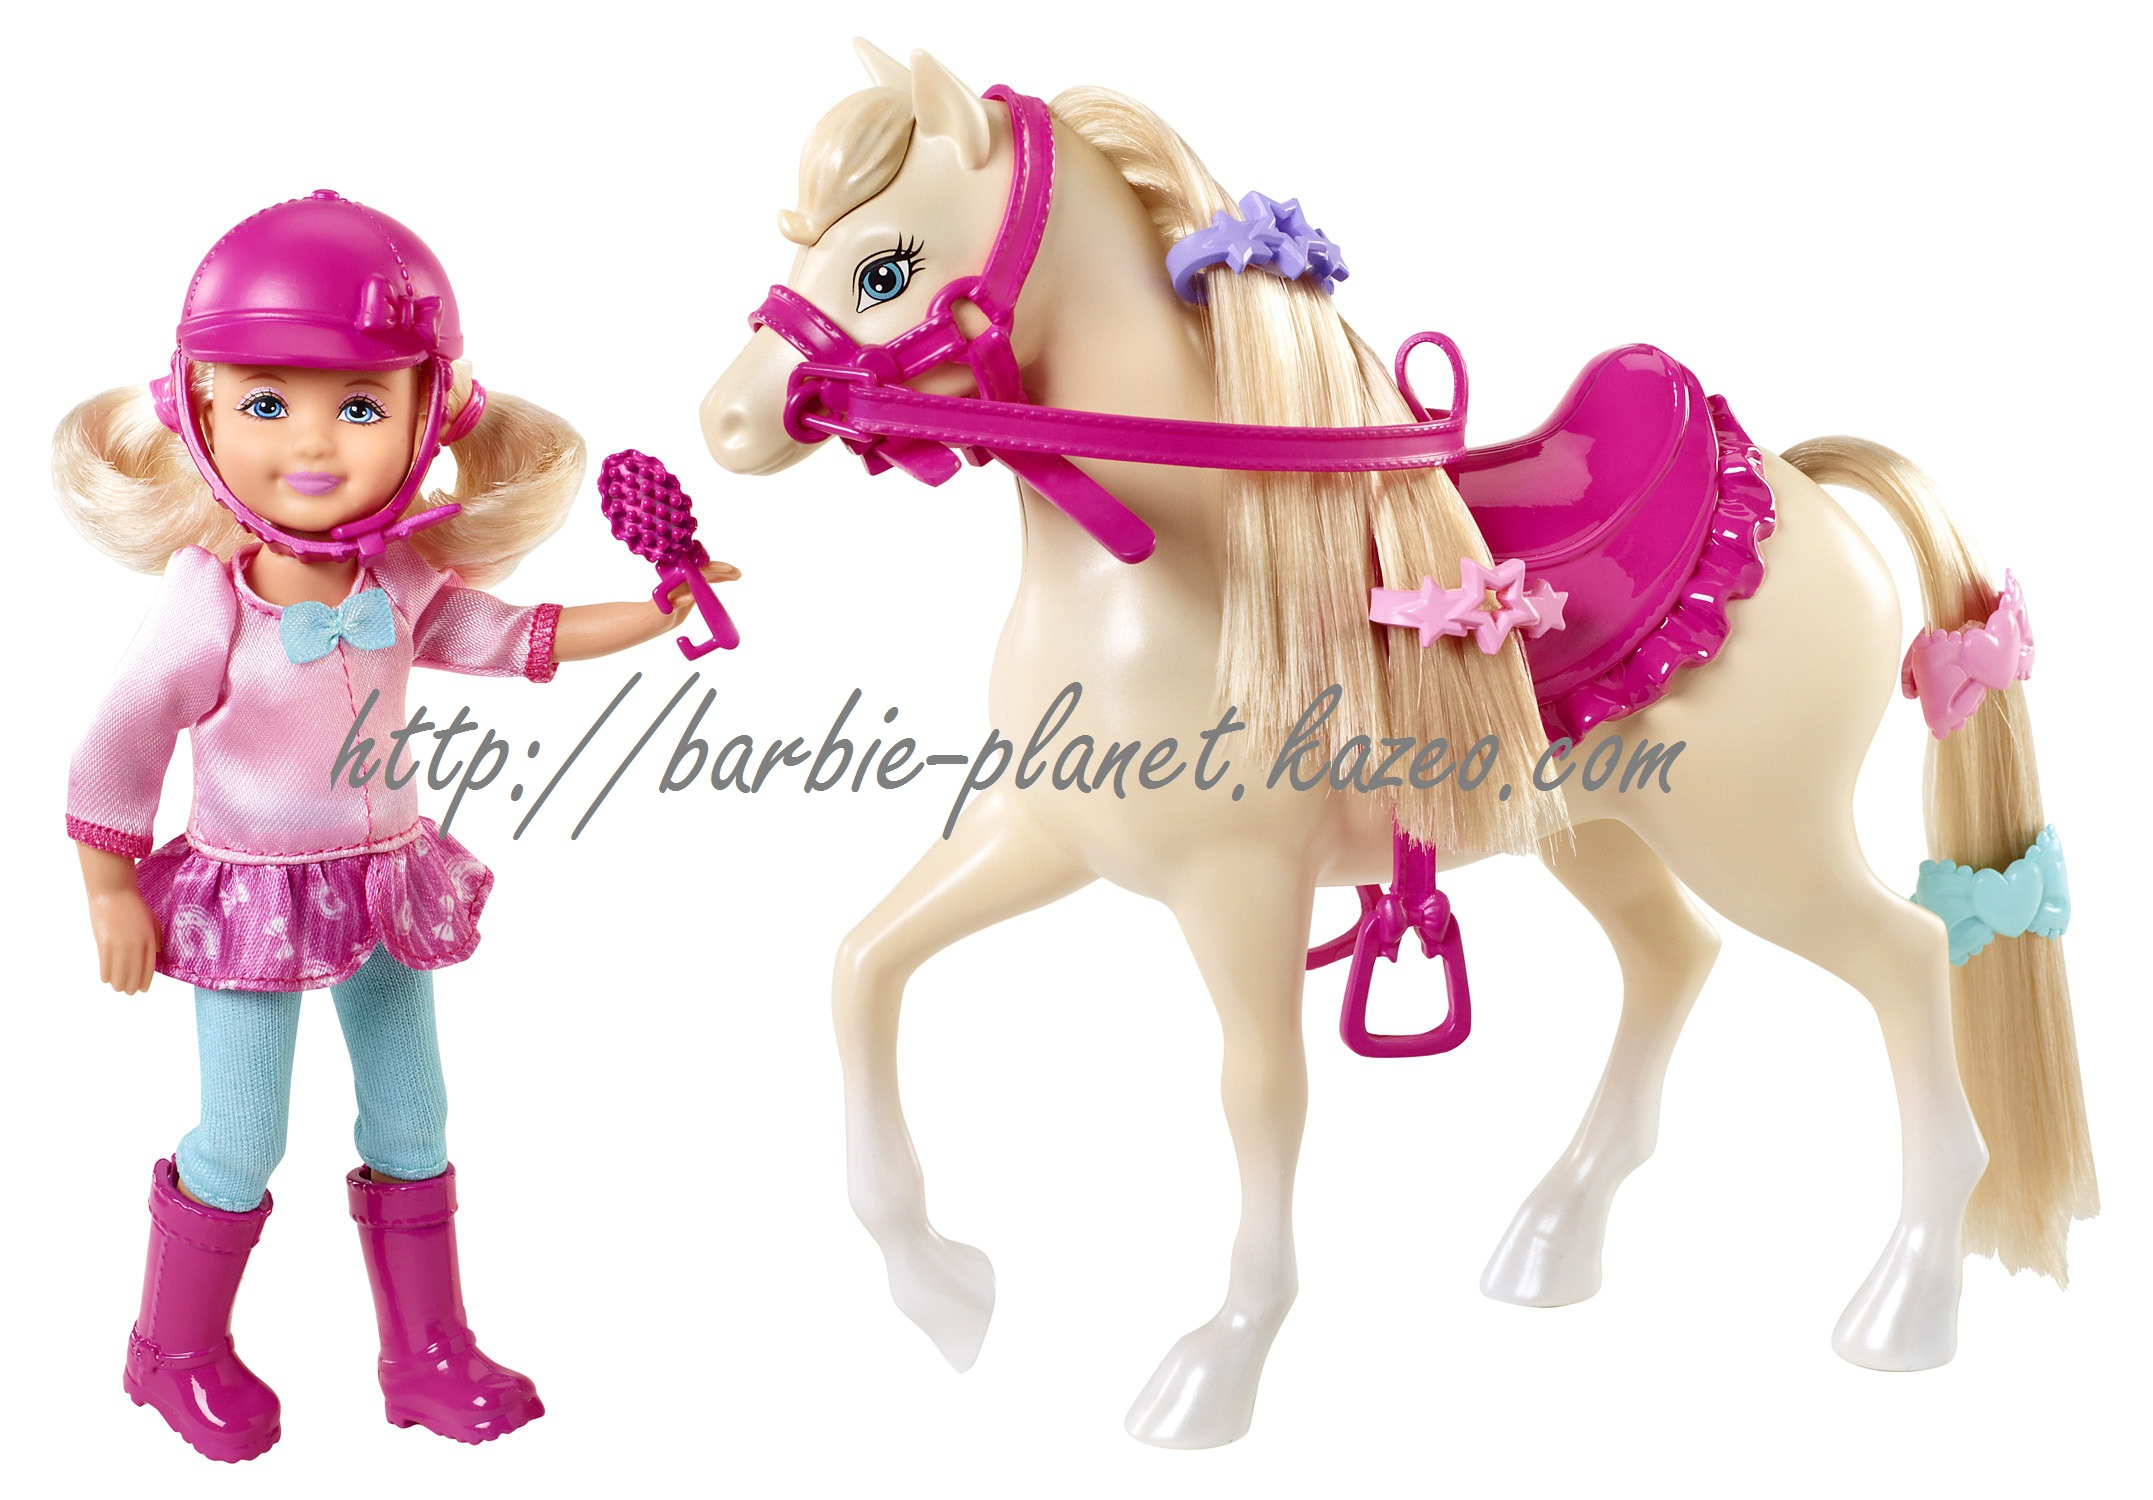 poupe chelsea barbie and her sisters in a pony tale et son cheval - Barbie Cheval